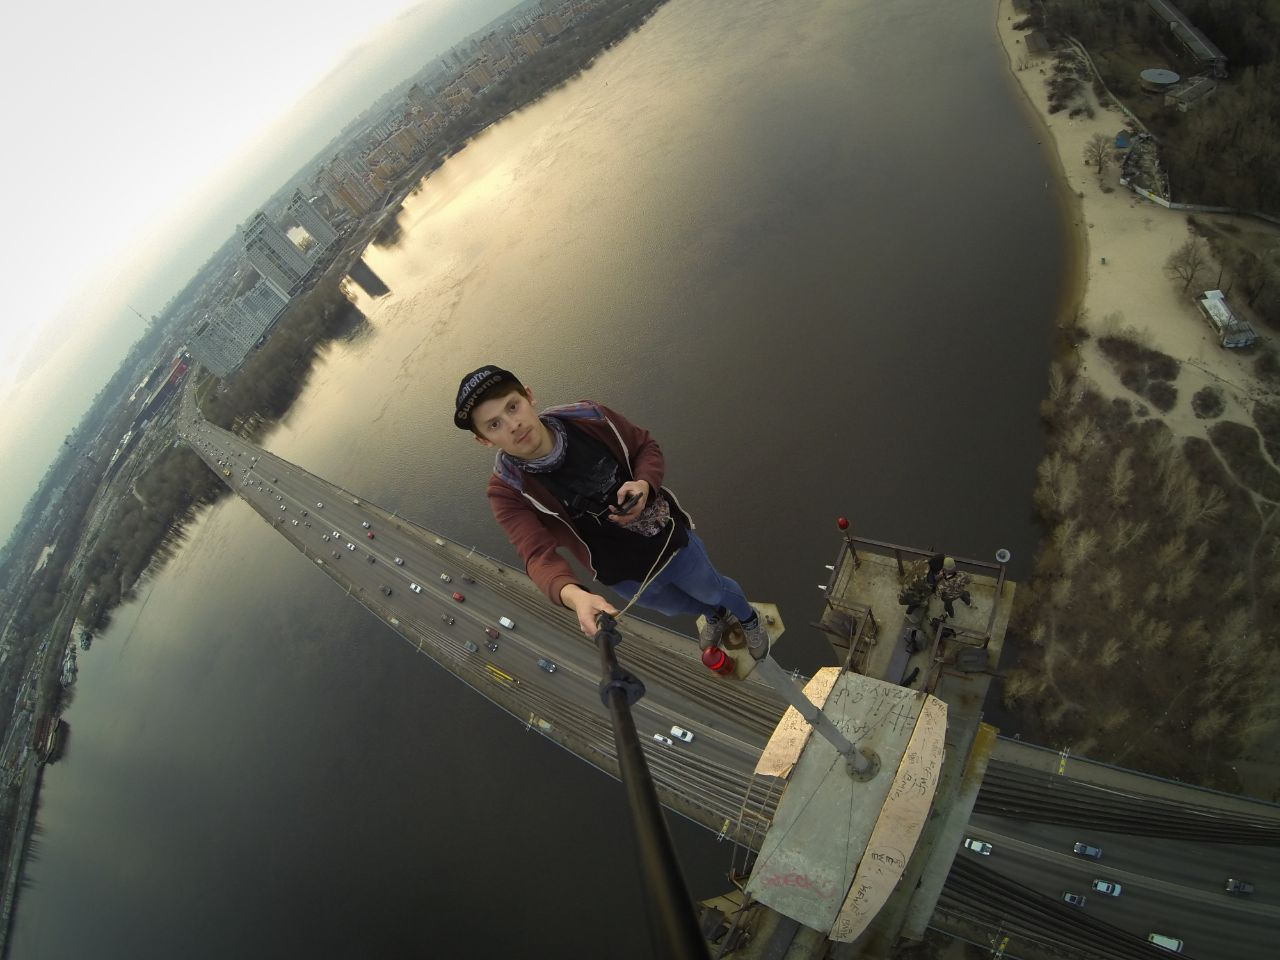 2018-04-10-00.42.25-min CLIMBING ON NORTH BRIDGE IN KIEV 119 m